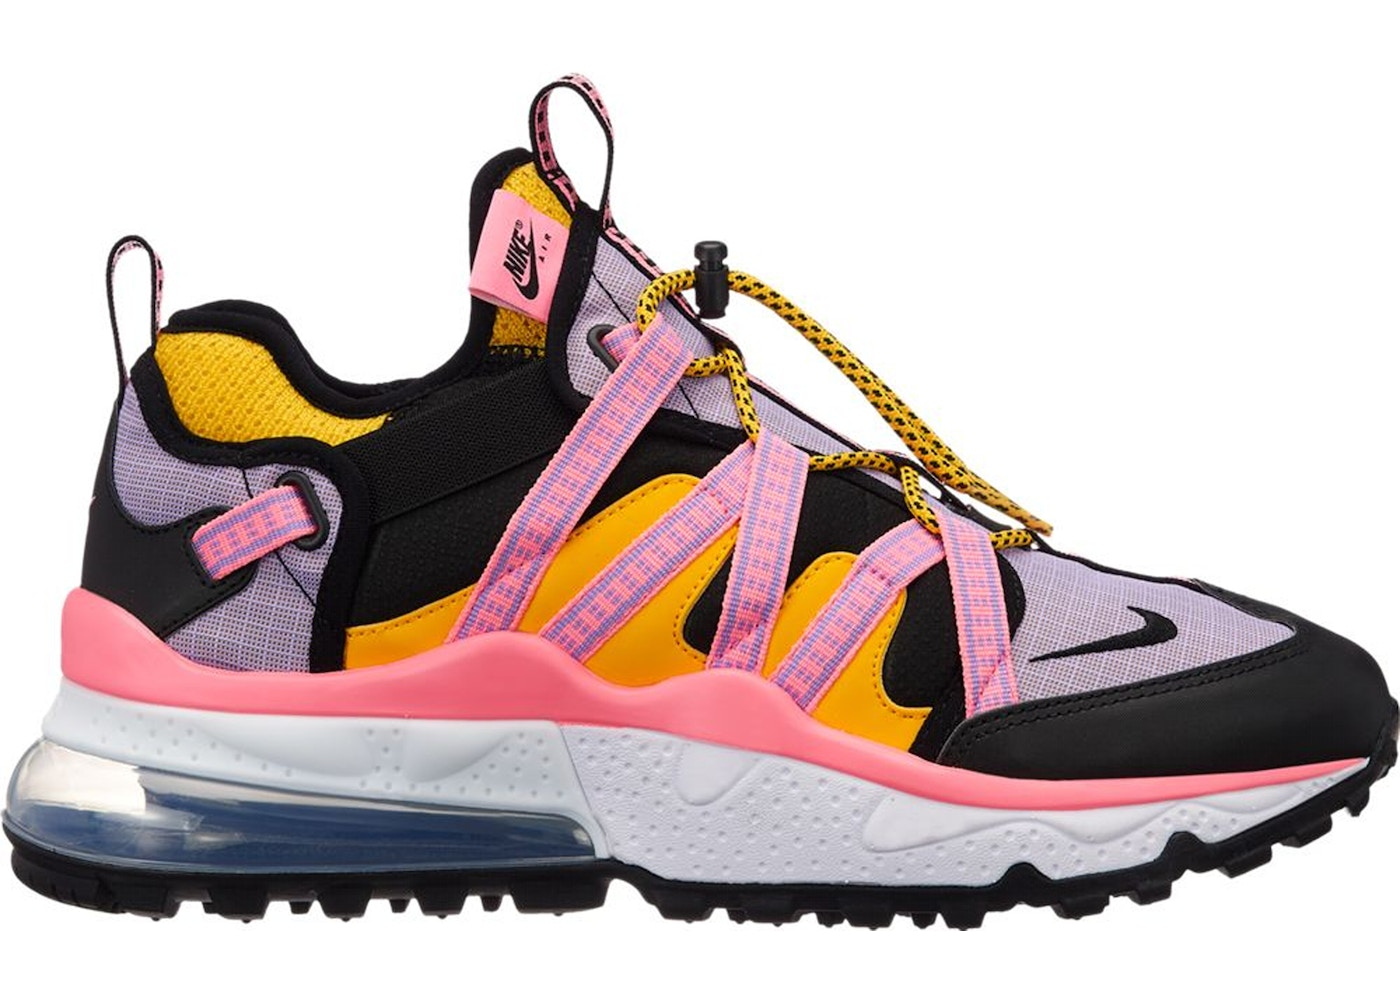 Buy Nike Air Max 270 Shoes & Deadstock Sneakers